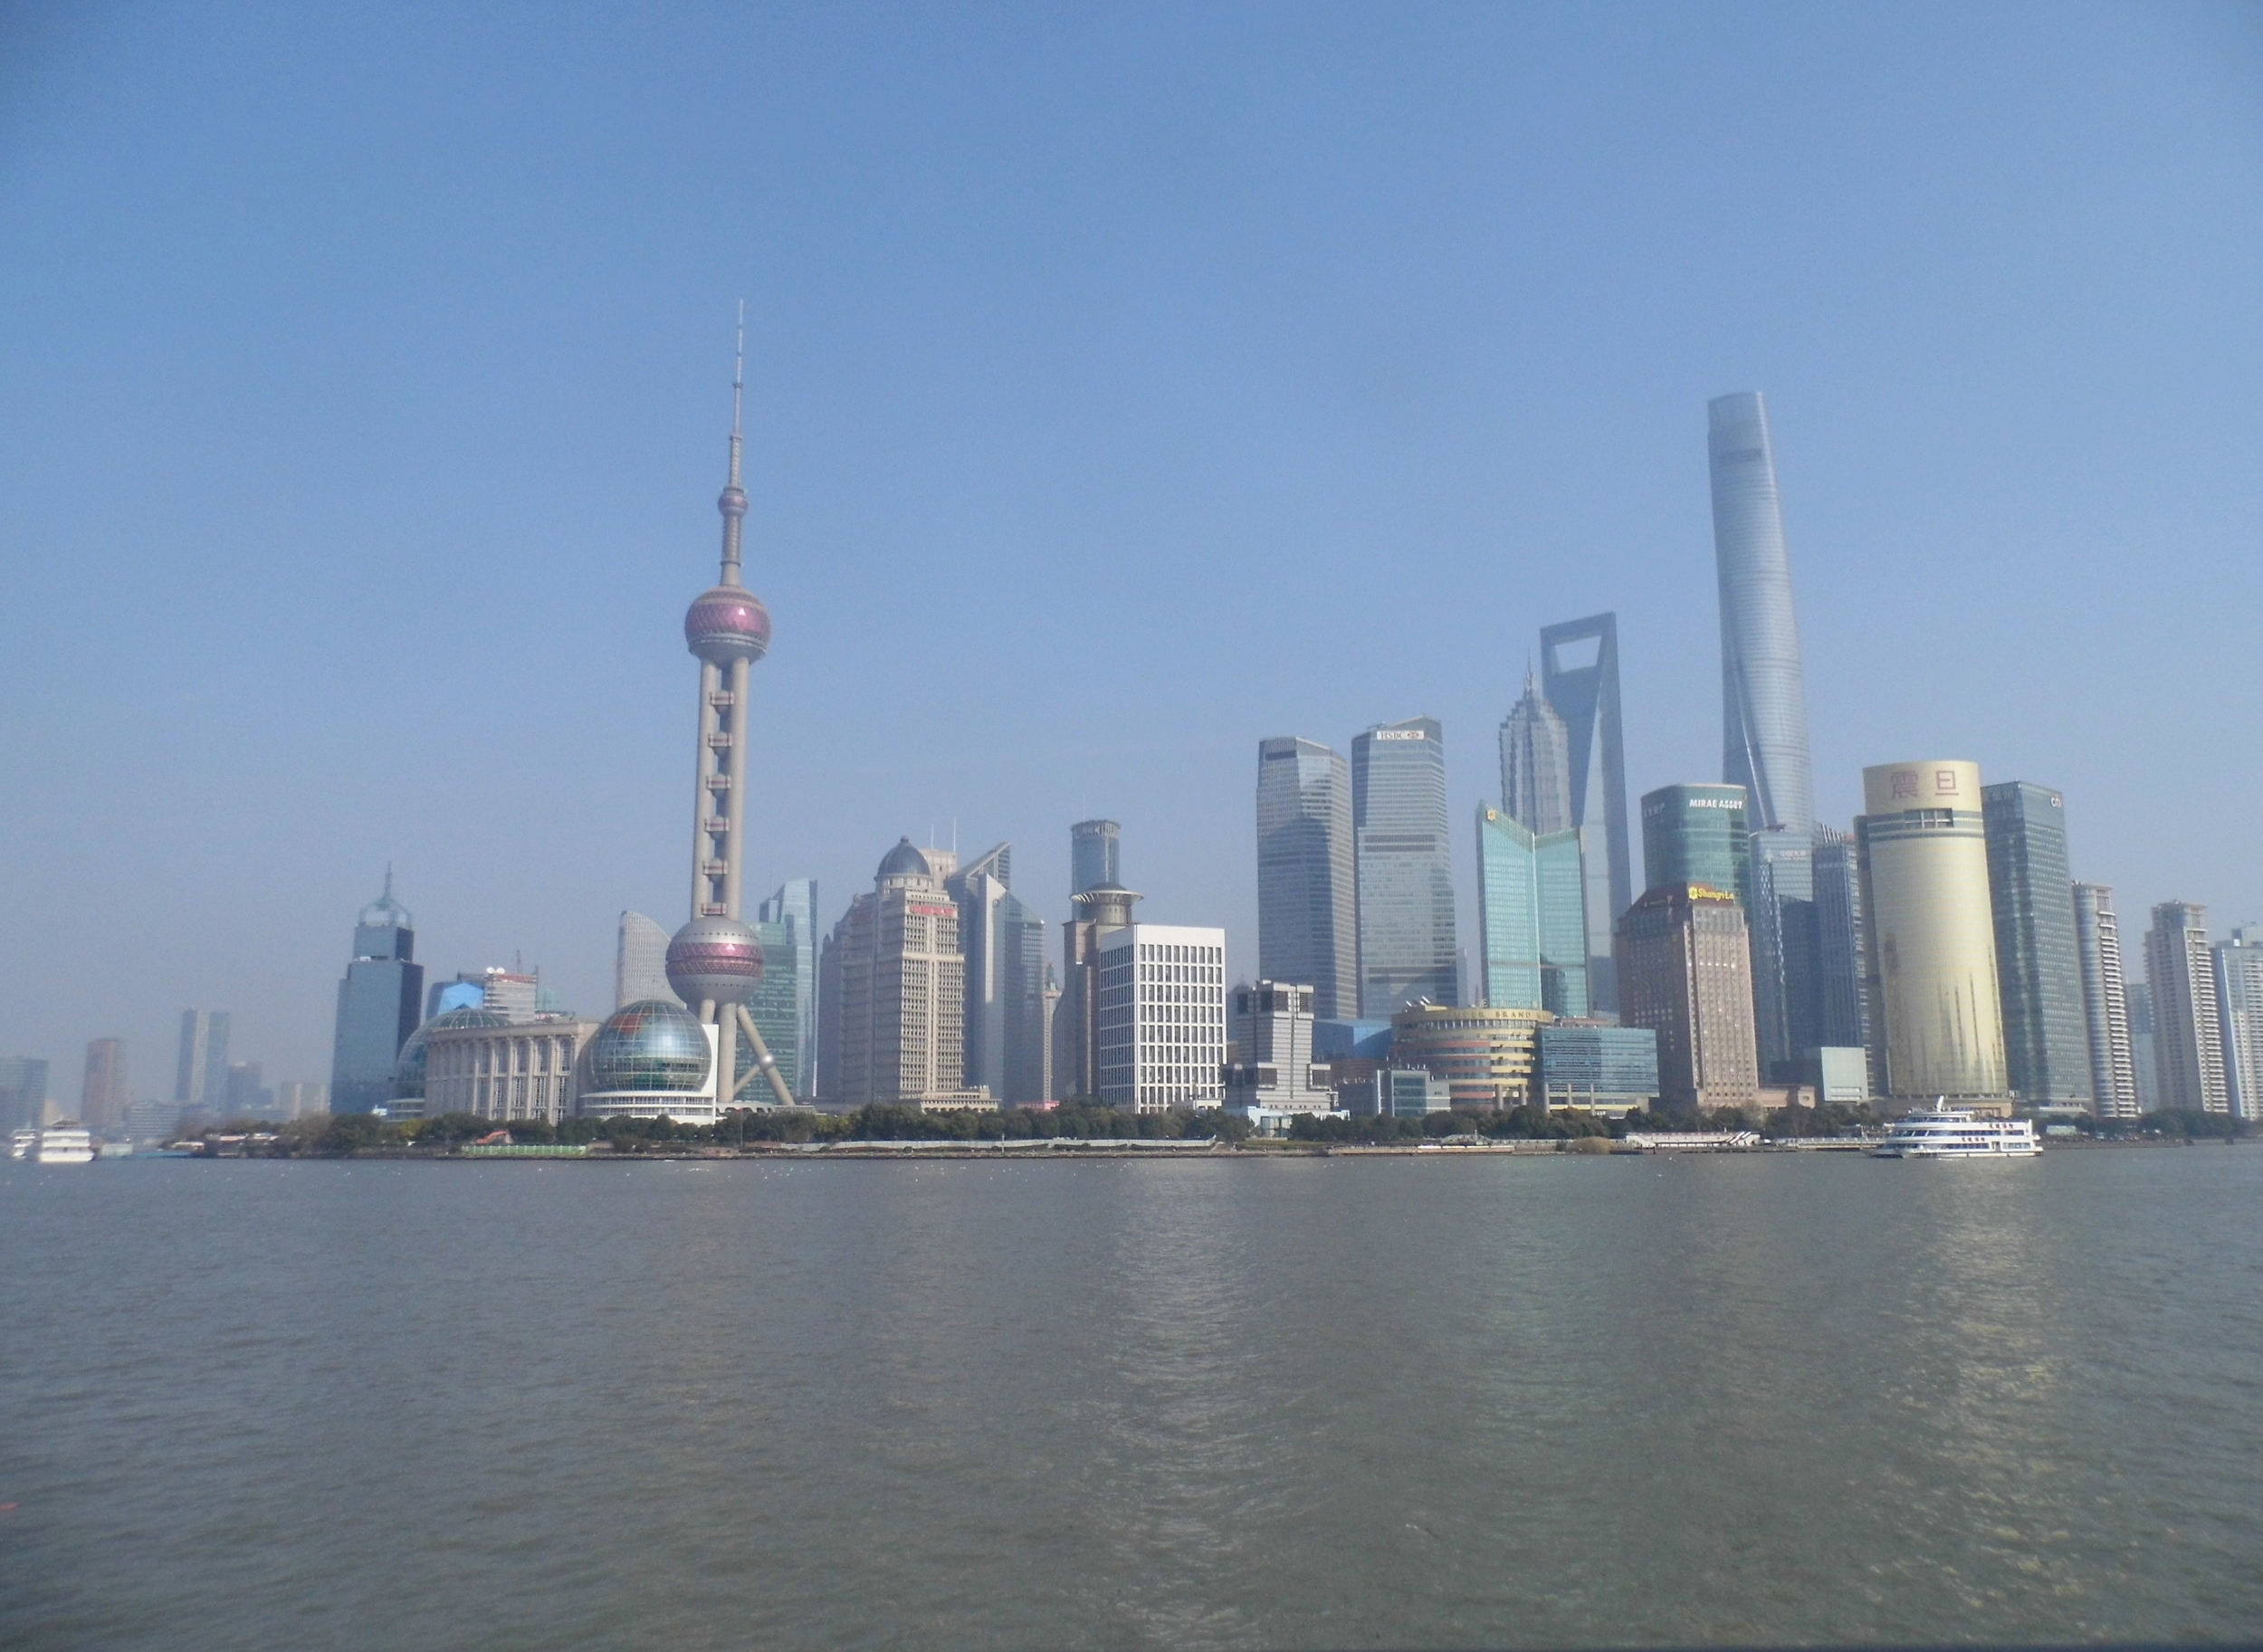 Standing on the bund looking at the financial center